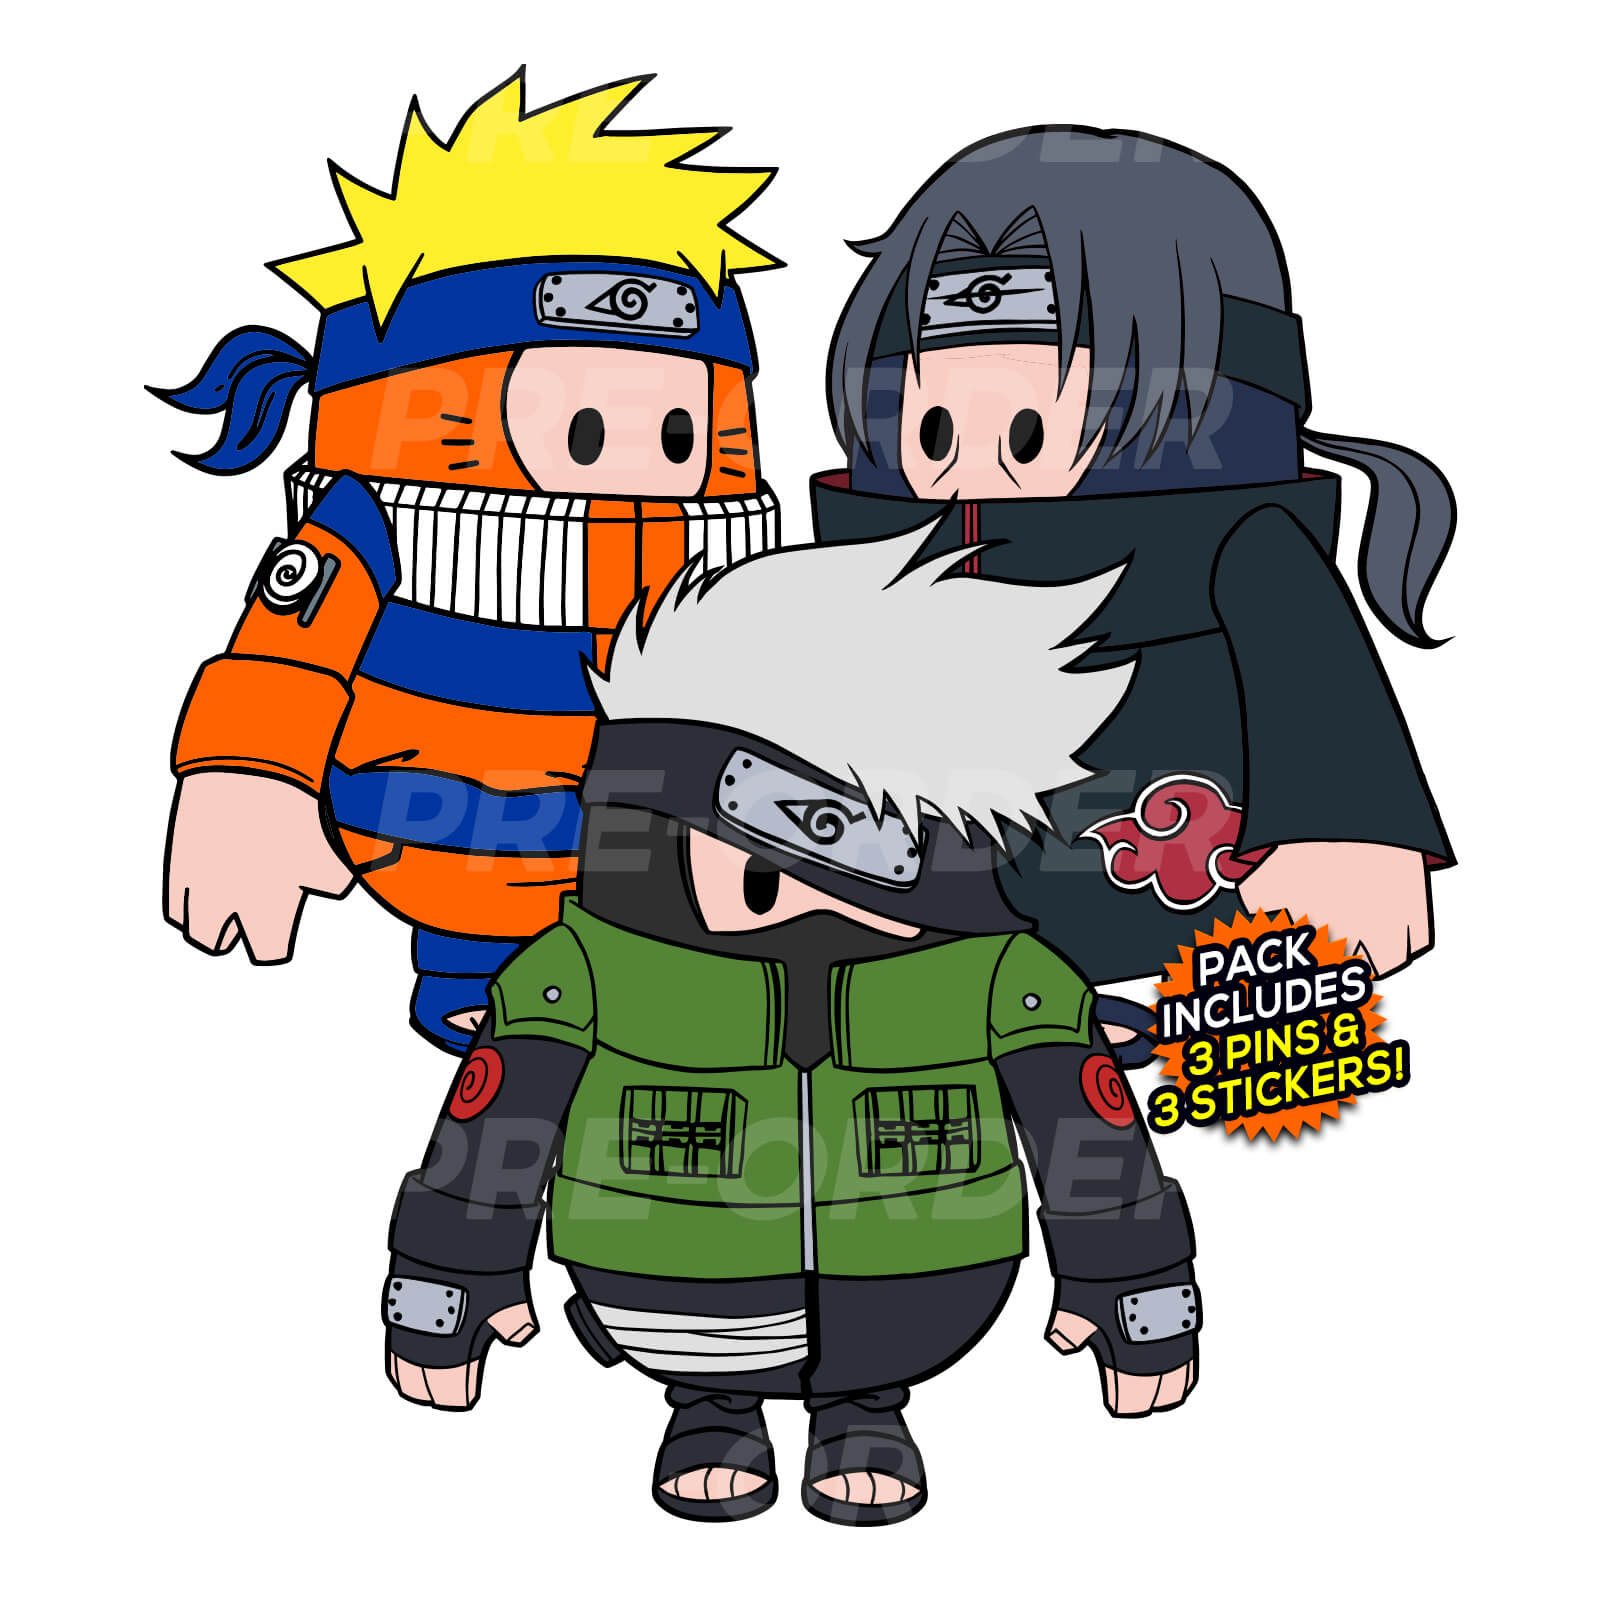 Naruto Fall Guys (3 Pin) Pin Pack (PREORDER)